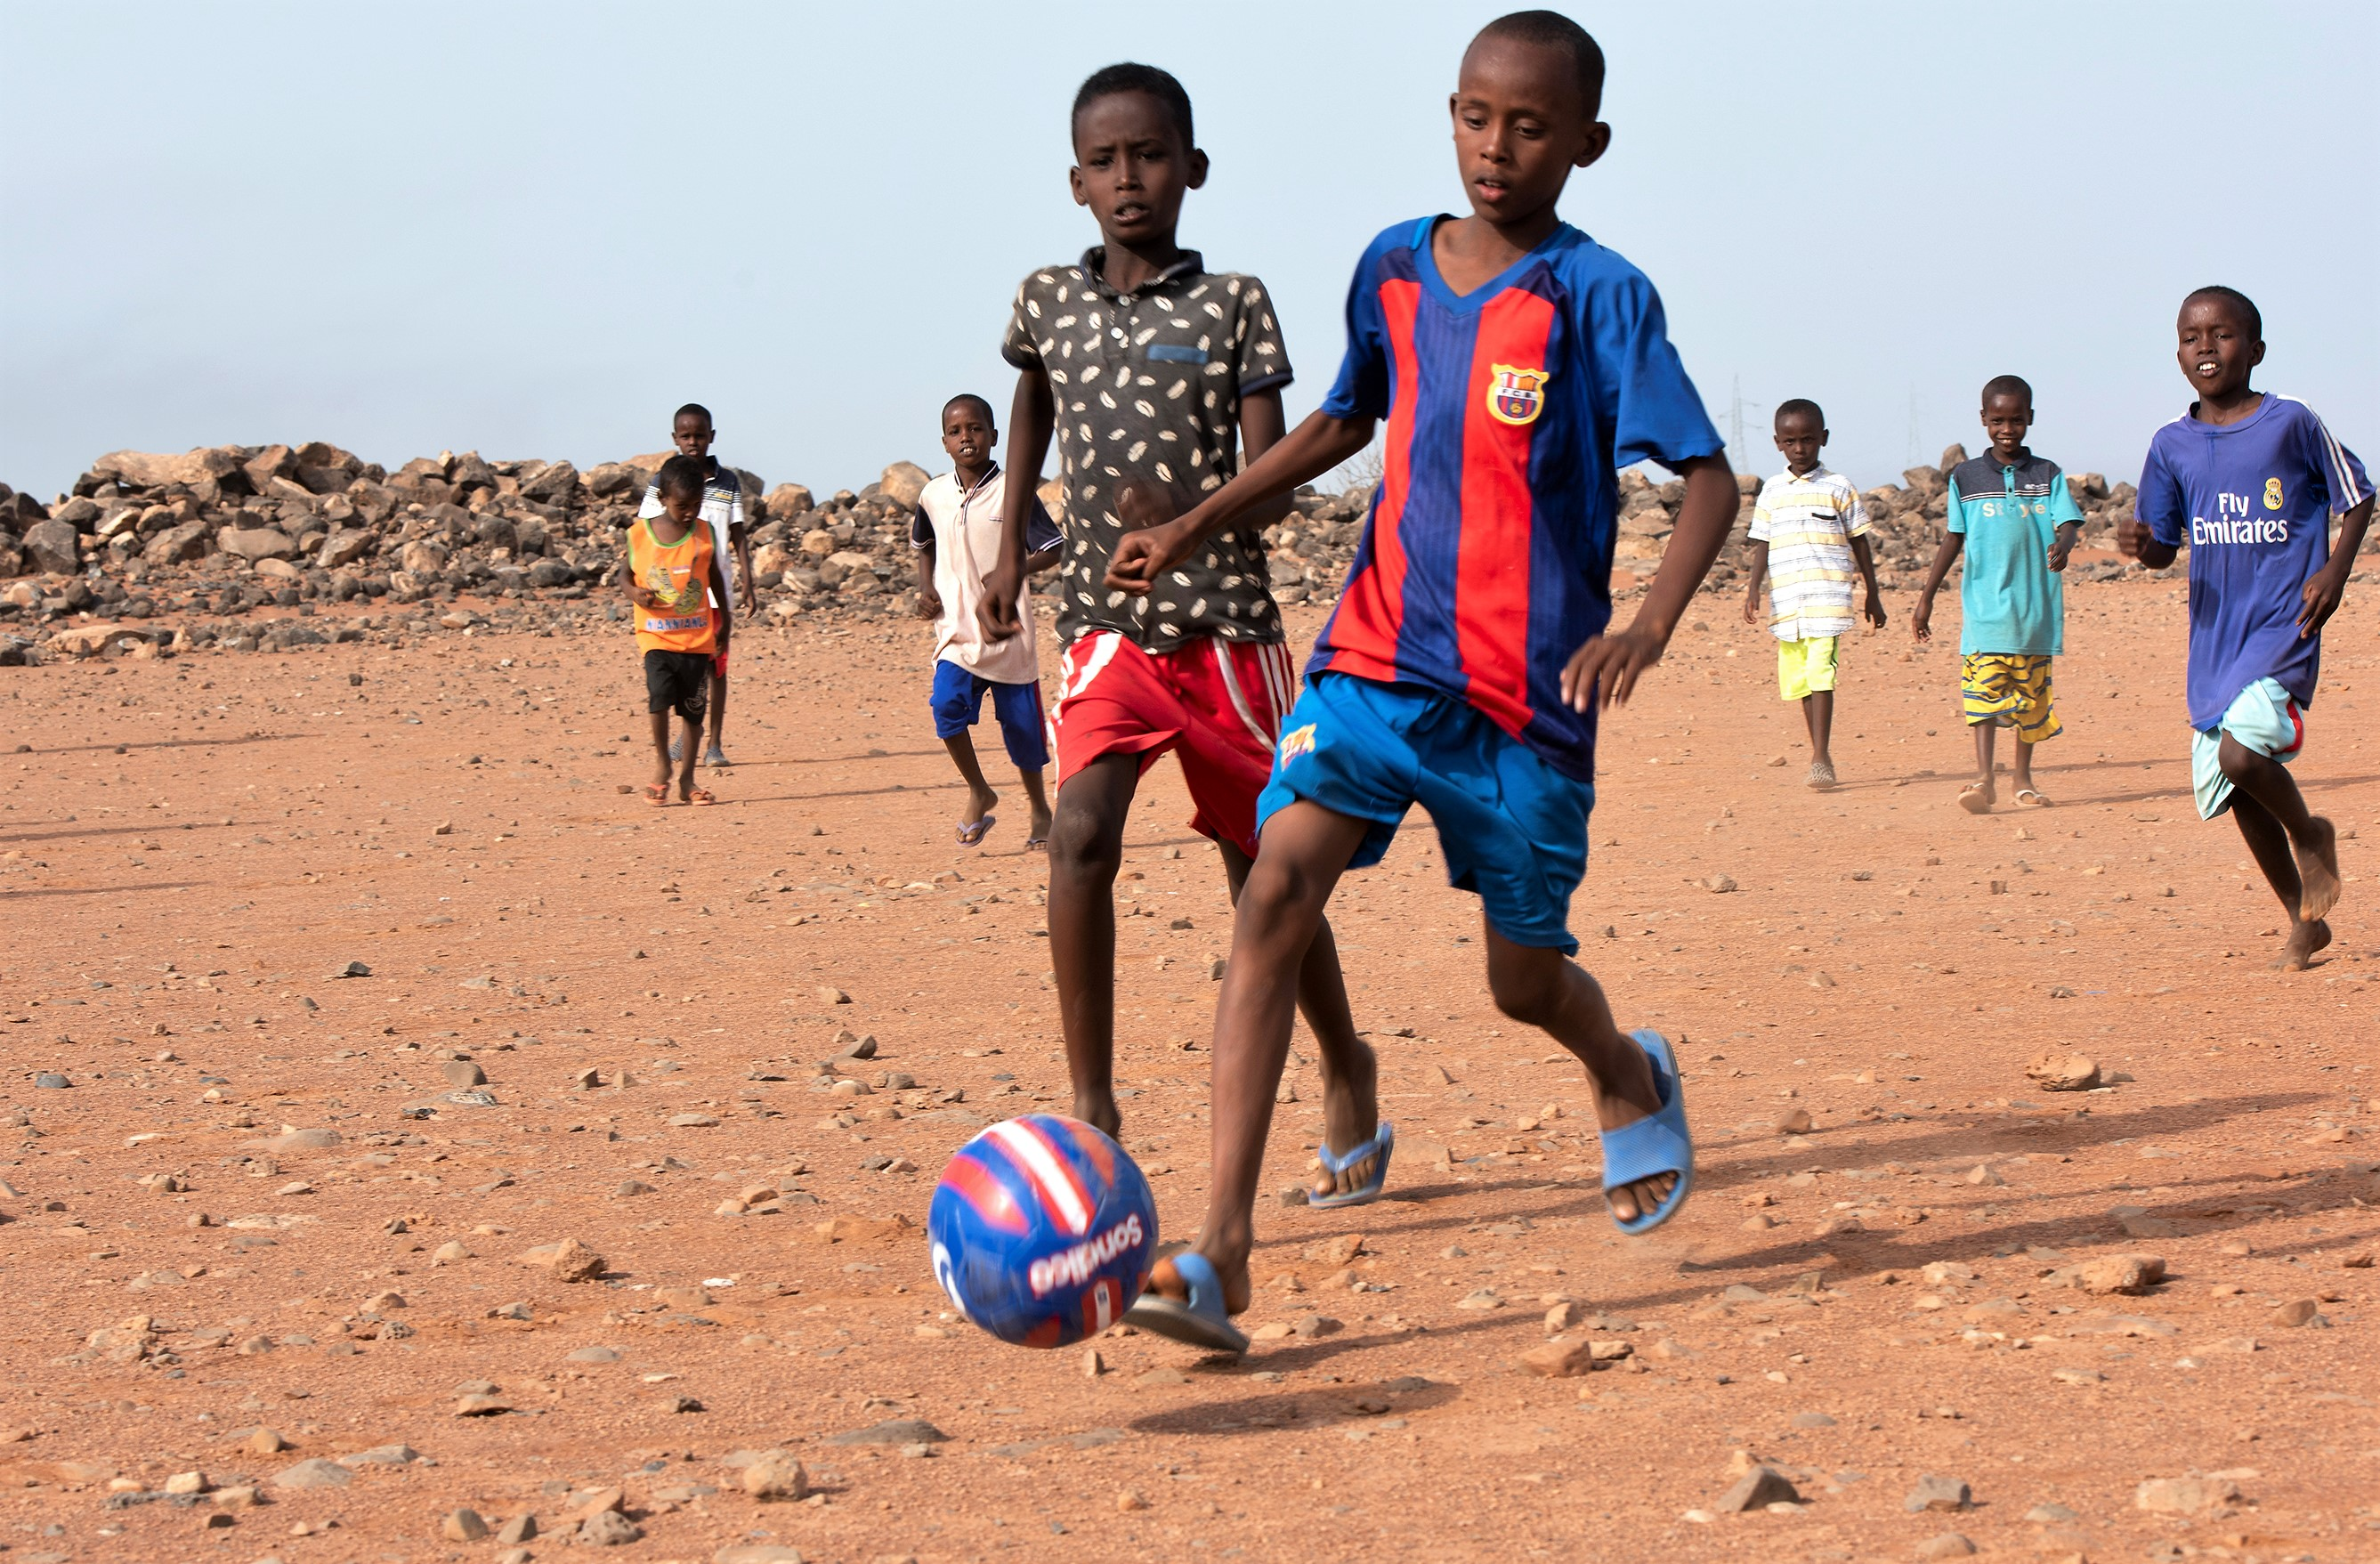 Djiboutian children from Chebelley Village play soccer outside of Chebelley Village, Djibouti, Aug. 3, 2018. The 404th Civil Affairs Battalion organized an outreach event that included 30 service members from Combined Joint Task Force - Horn of Africa. (U.S. Air National Guard photo by Master Sgt. Sarah Mattison)